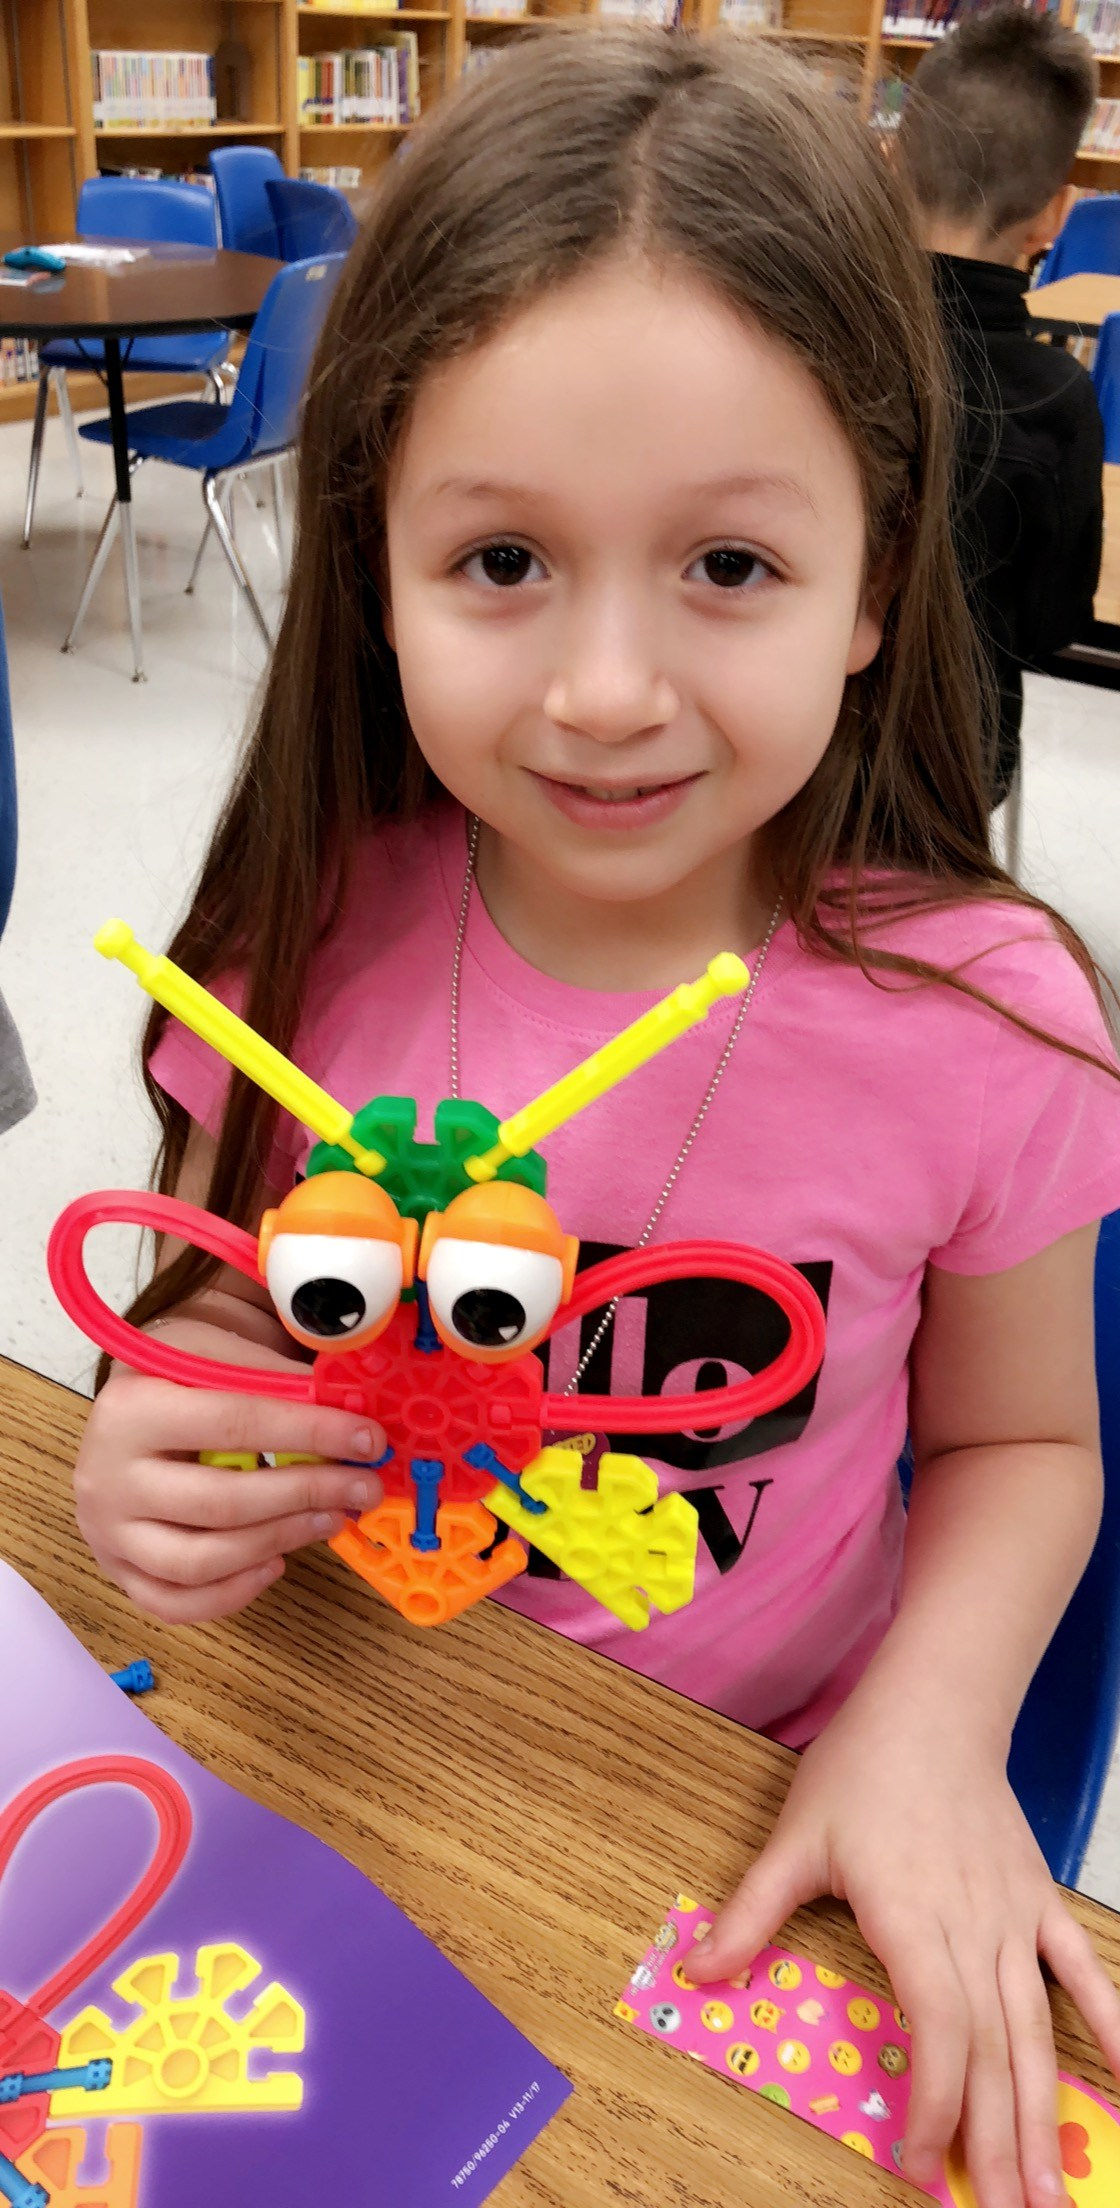 Student shows off bug creation.